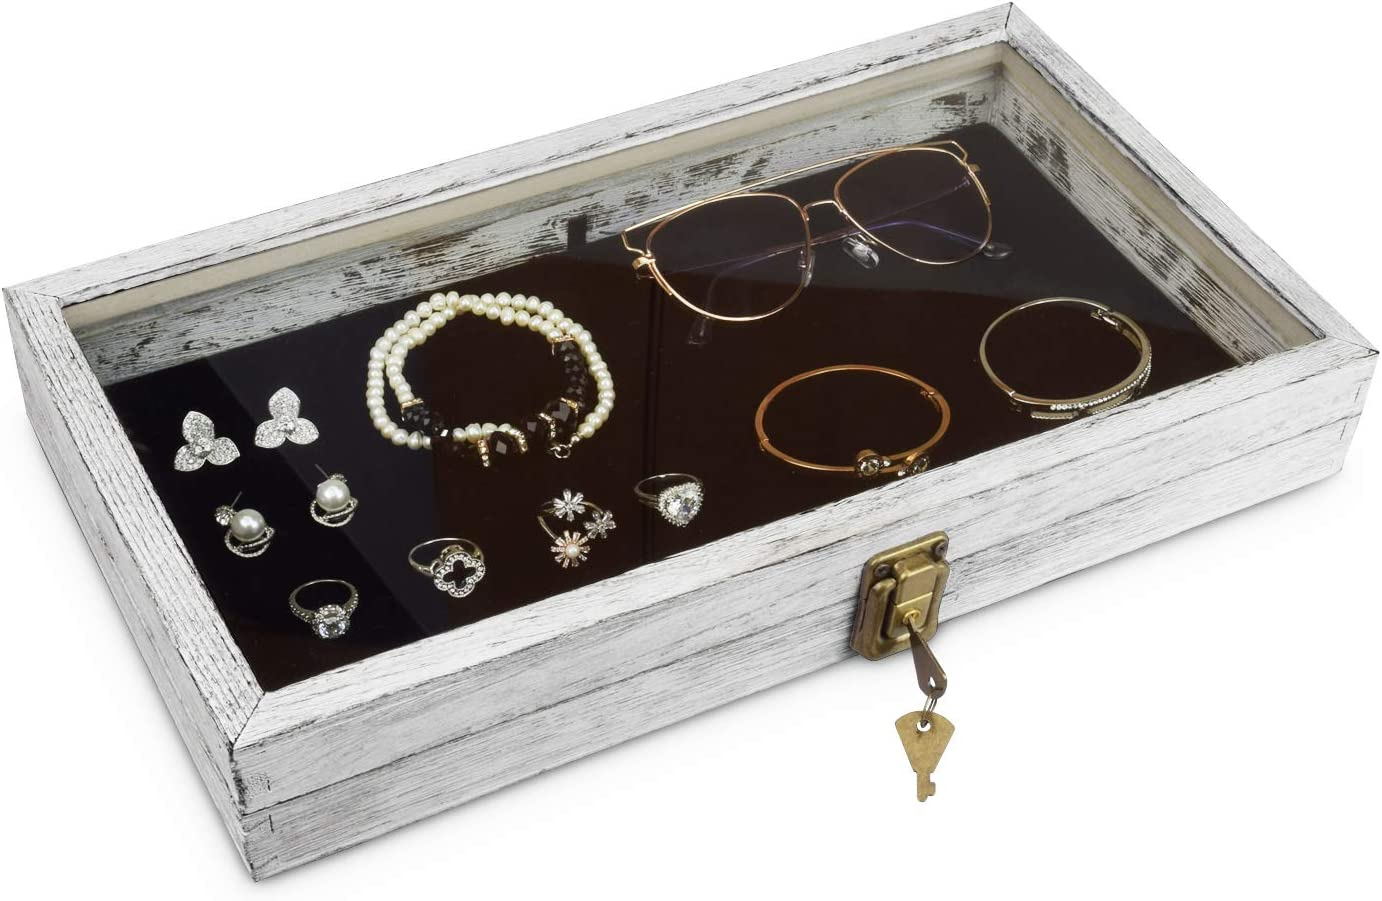 MOOCA 2021 model Wood Excellent Glass Top Jewelry f Display Tray Wooden Case